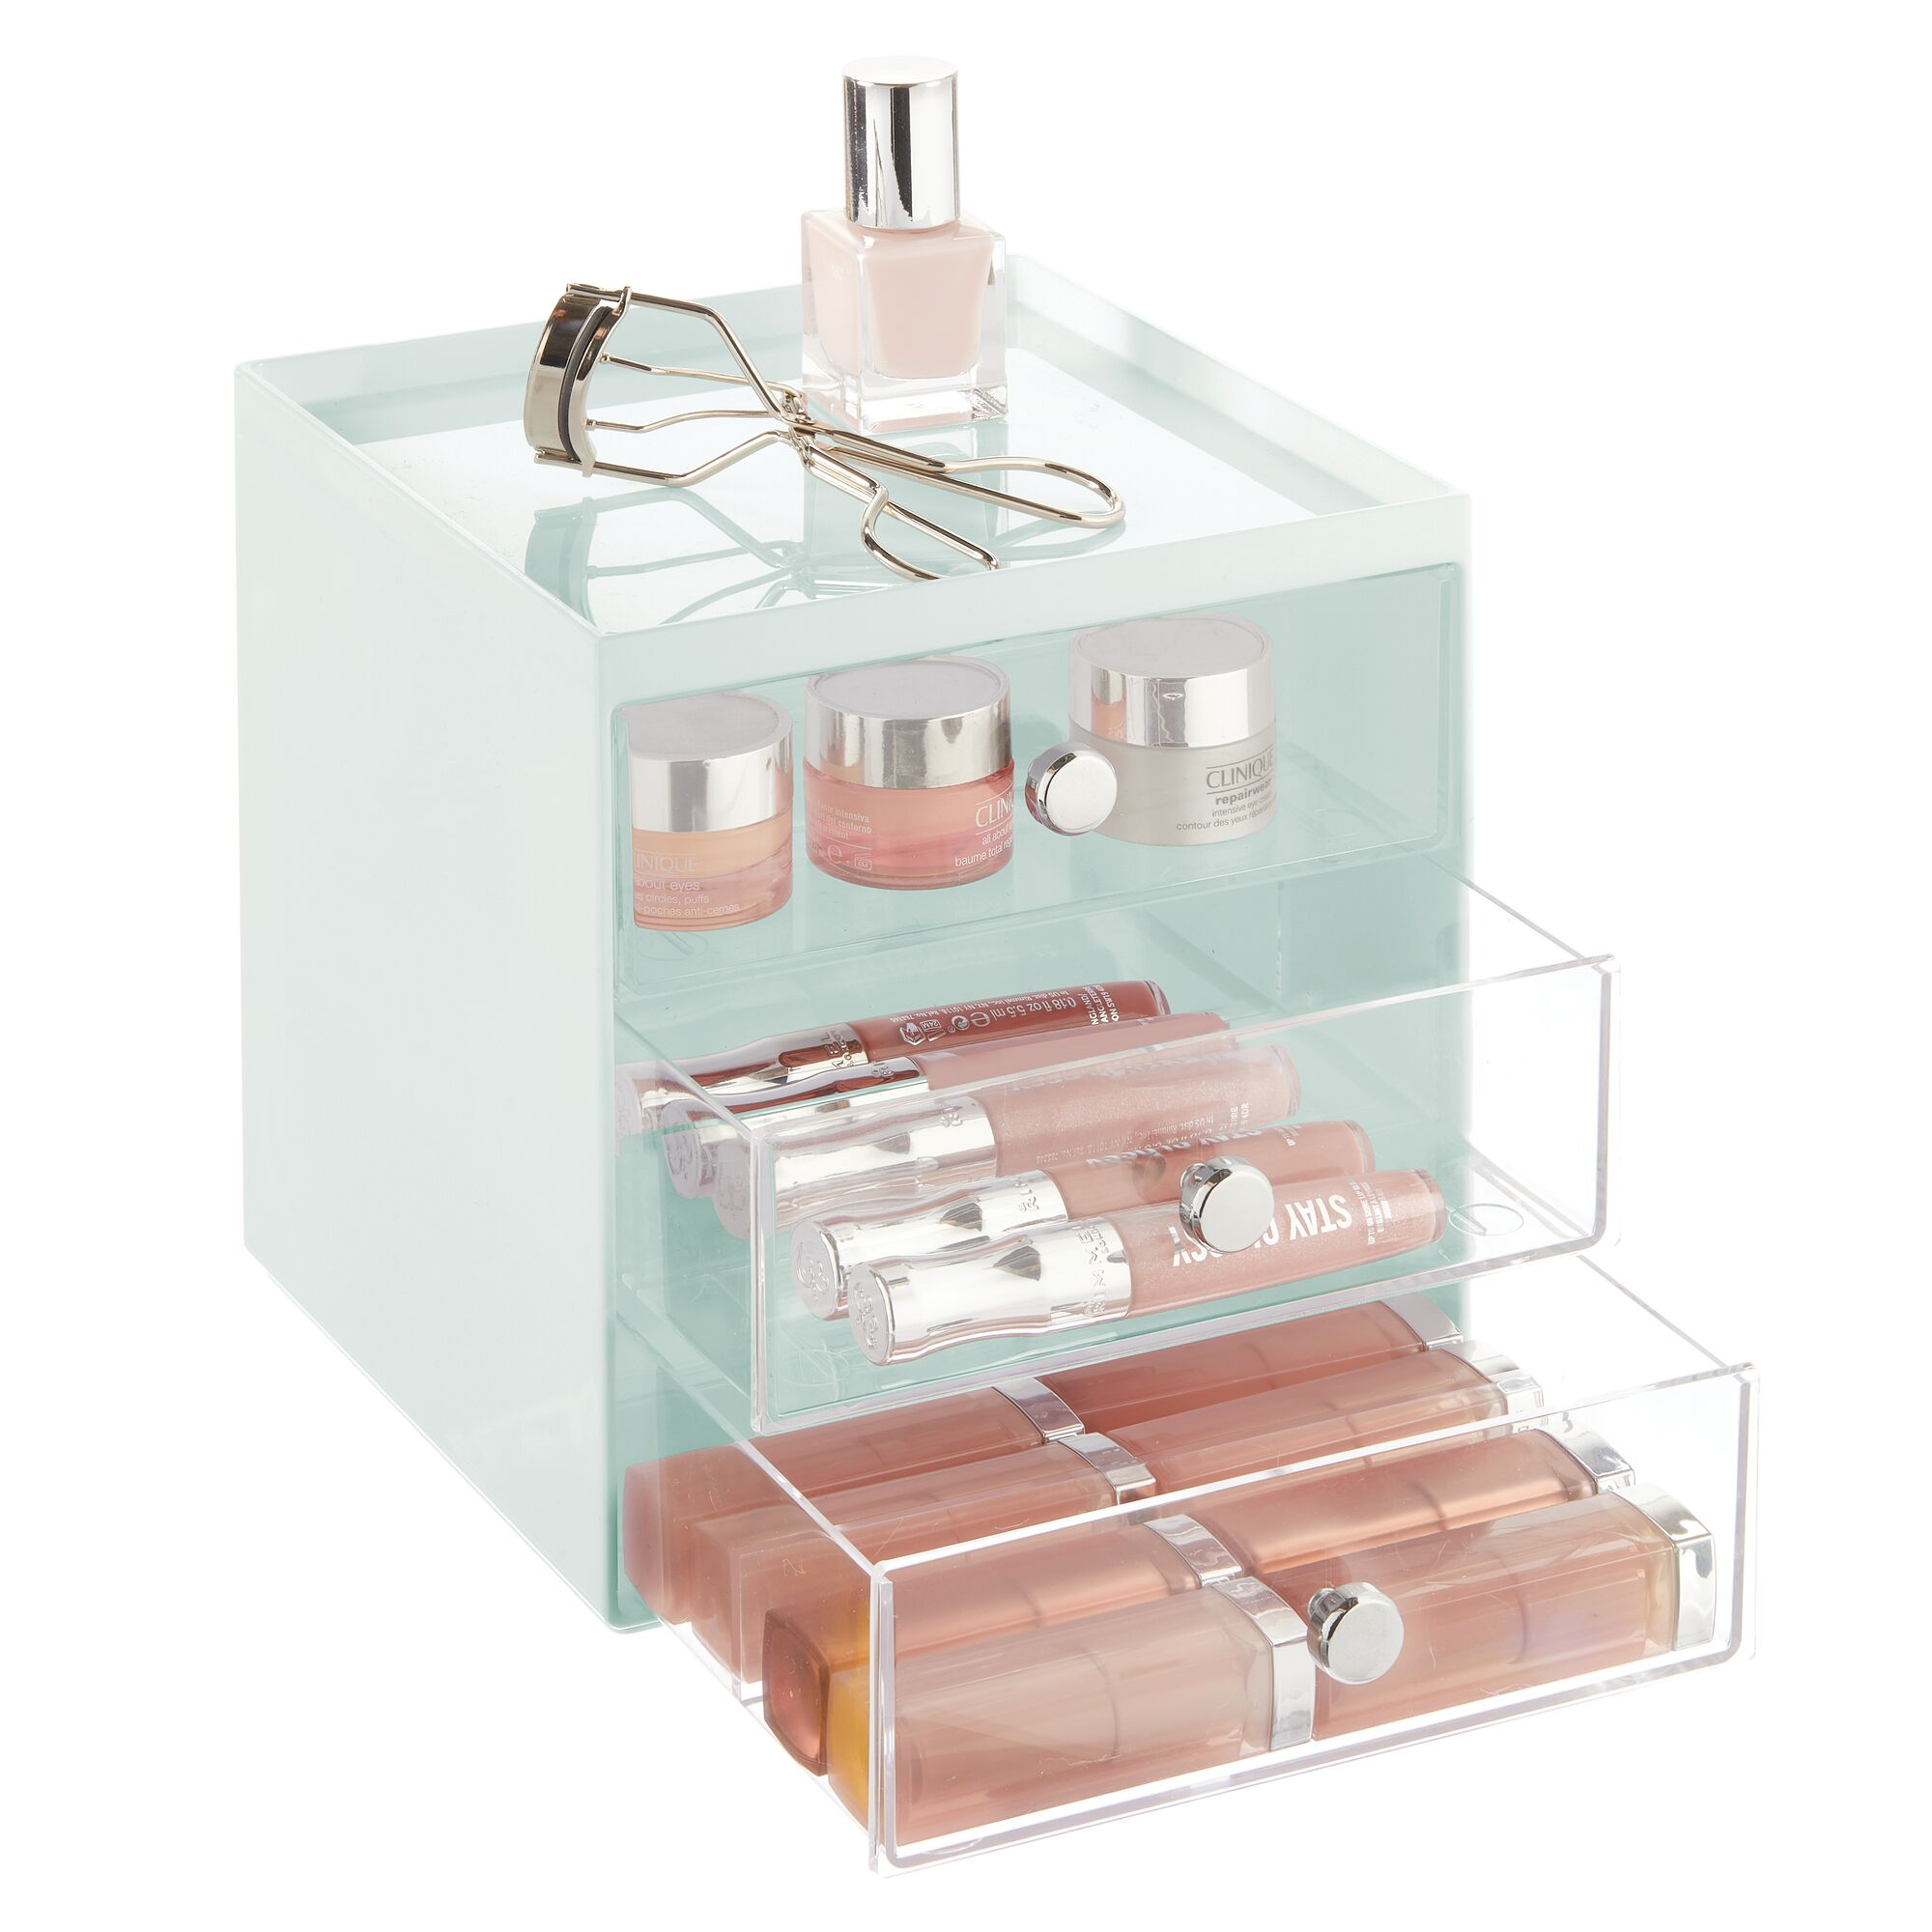 mDesign-Plastic-Makeup-Storage-Organizer-Cube-3-Drawers thumbnail 65